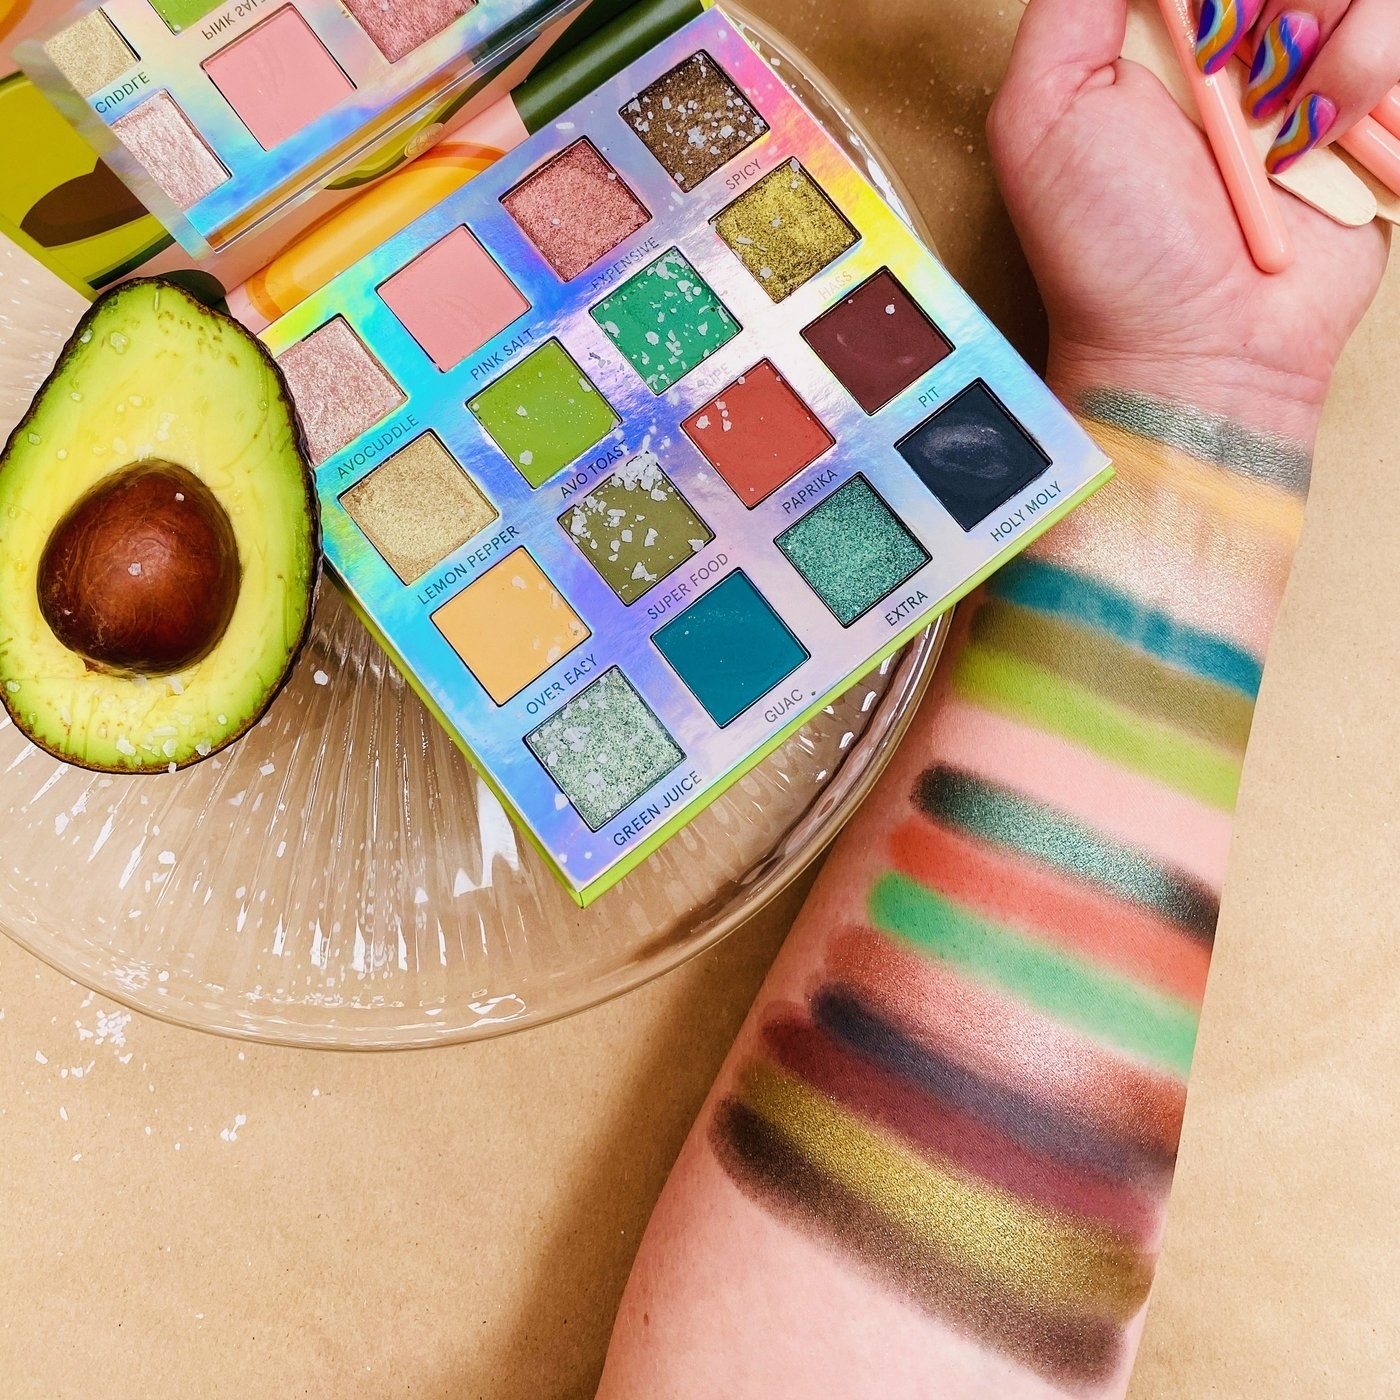 the palette with various yellow, green, and pink tones next to sliced avocado